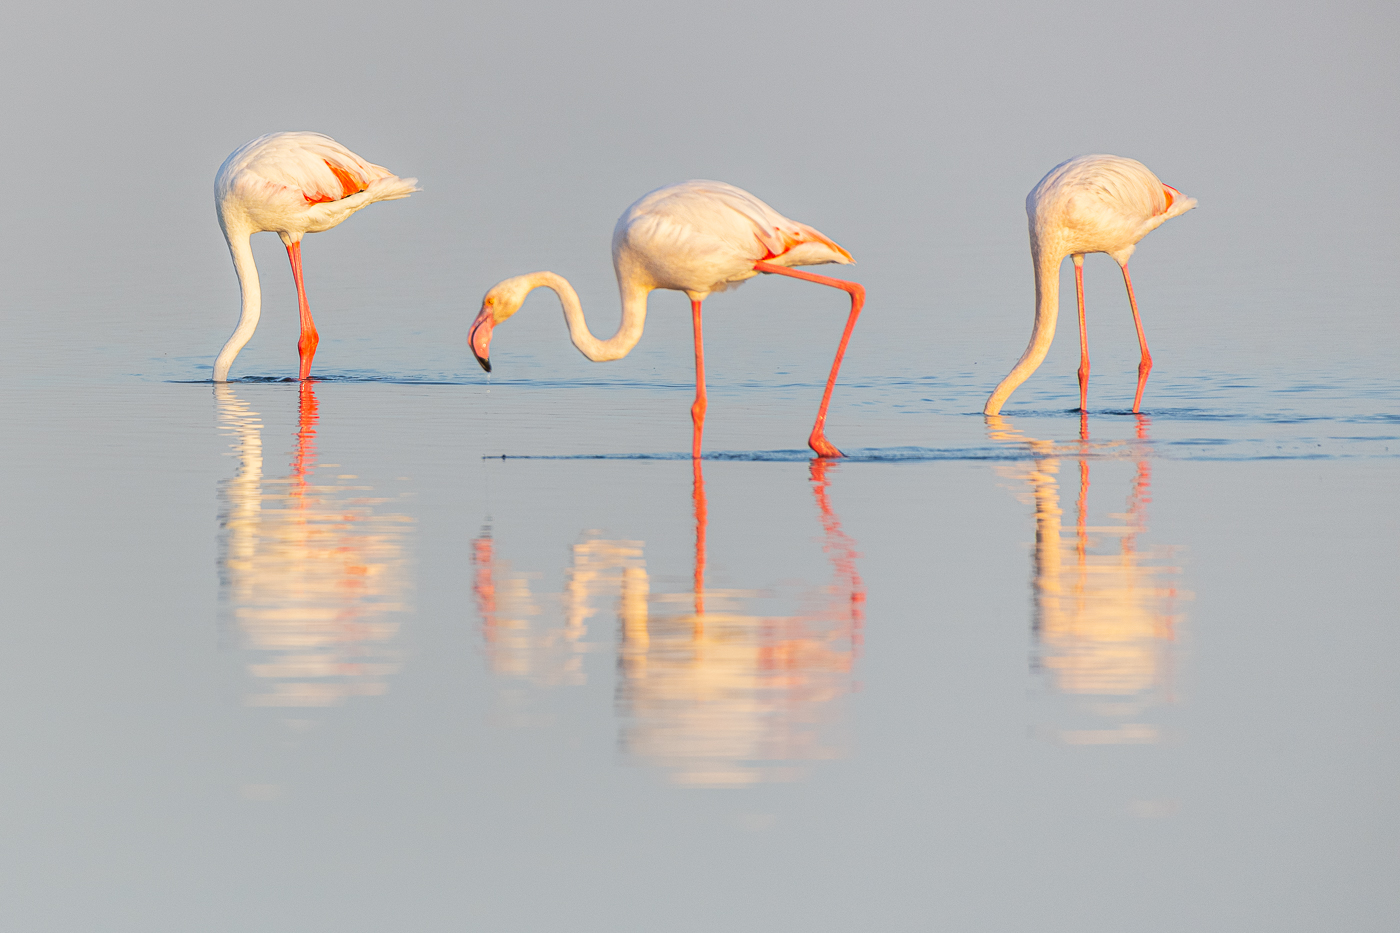 PRINT-50Open_Lily_Chang_2_Flamingos_Feeding_in_Walvis_Bay